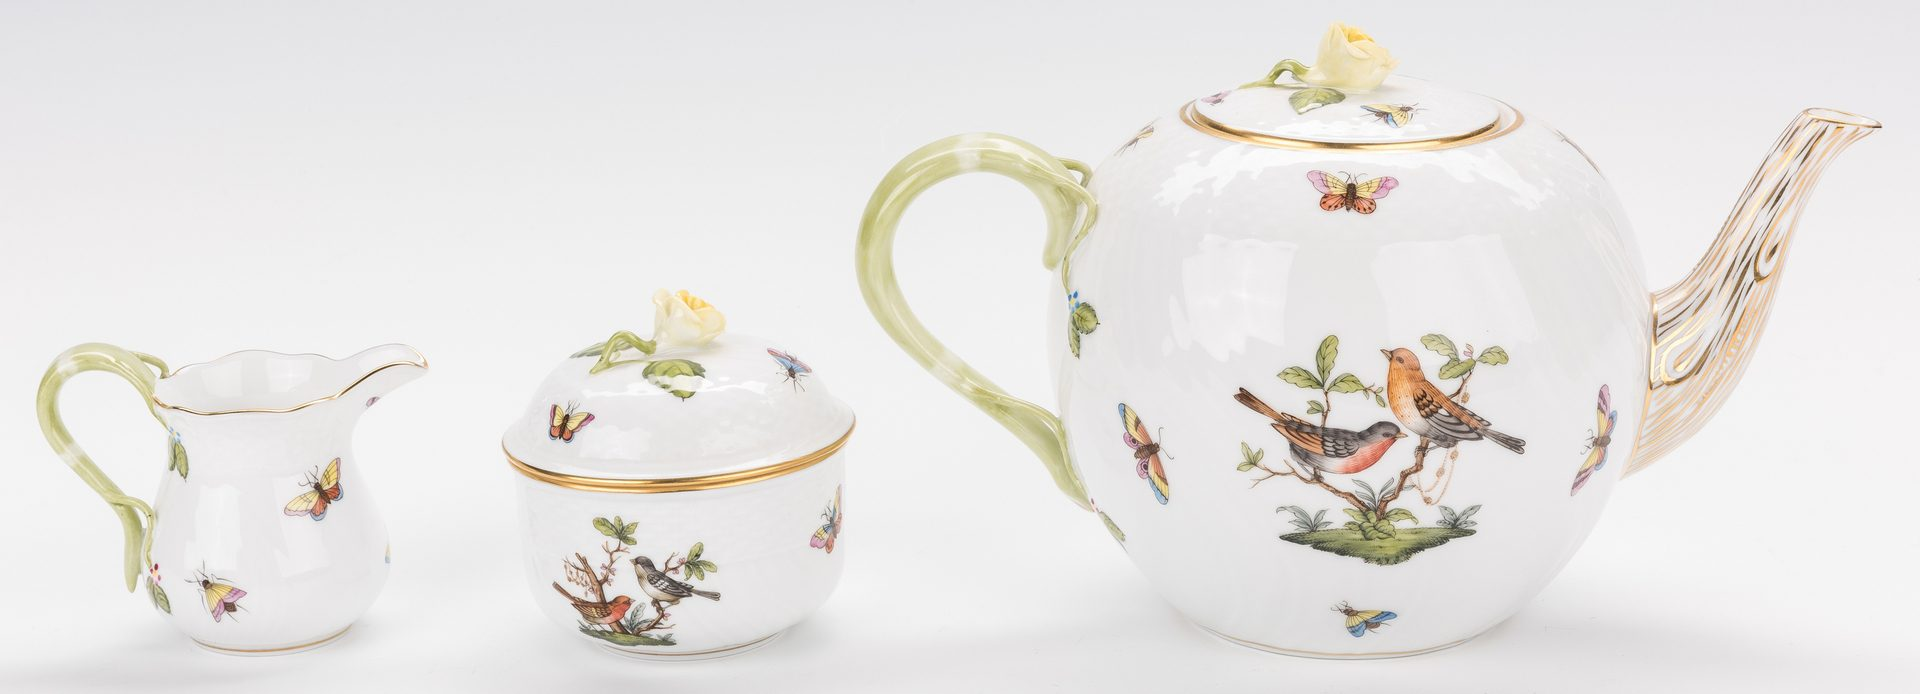 Lot 247: Herend Rothschild Bird Porcelain Tea Set, 27 pcs